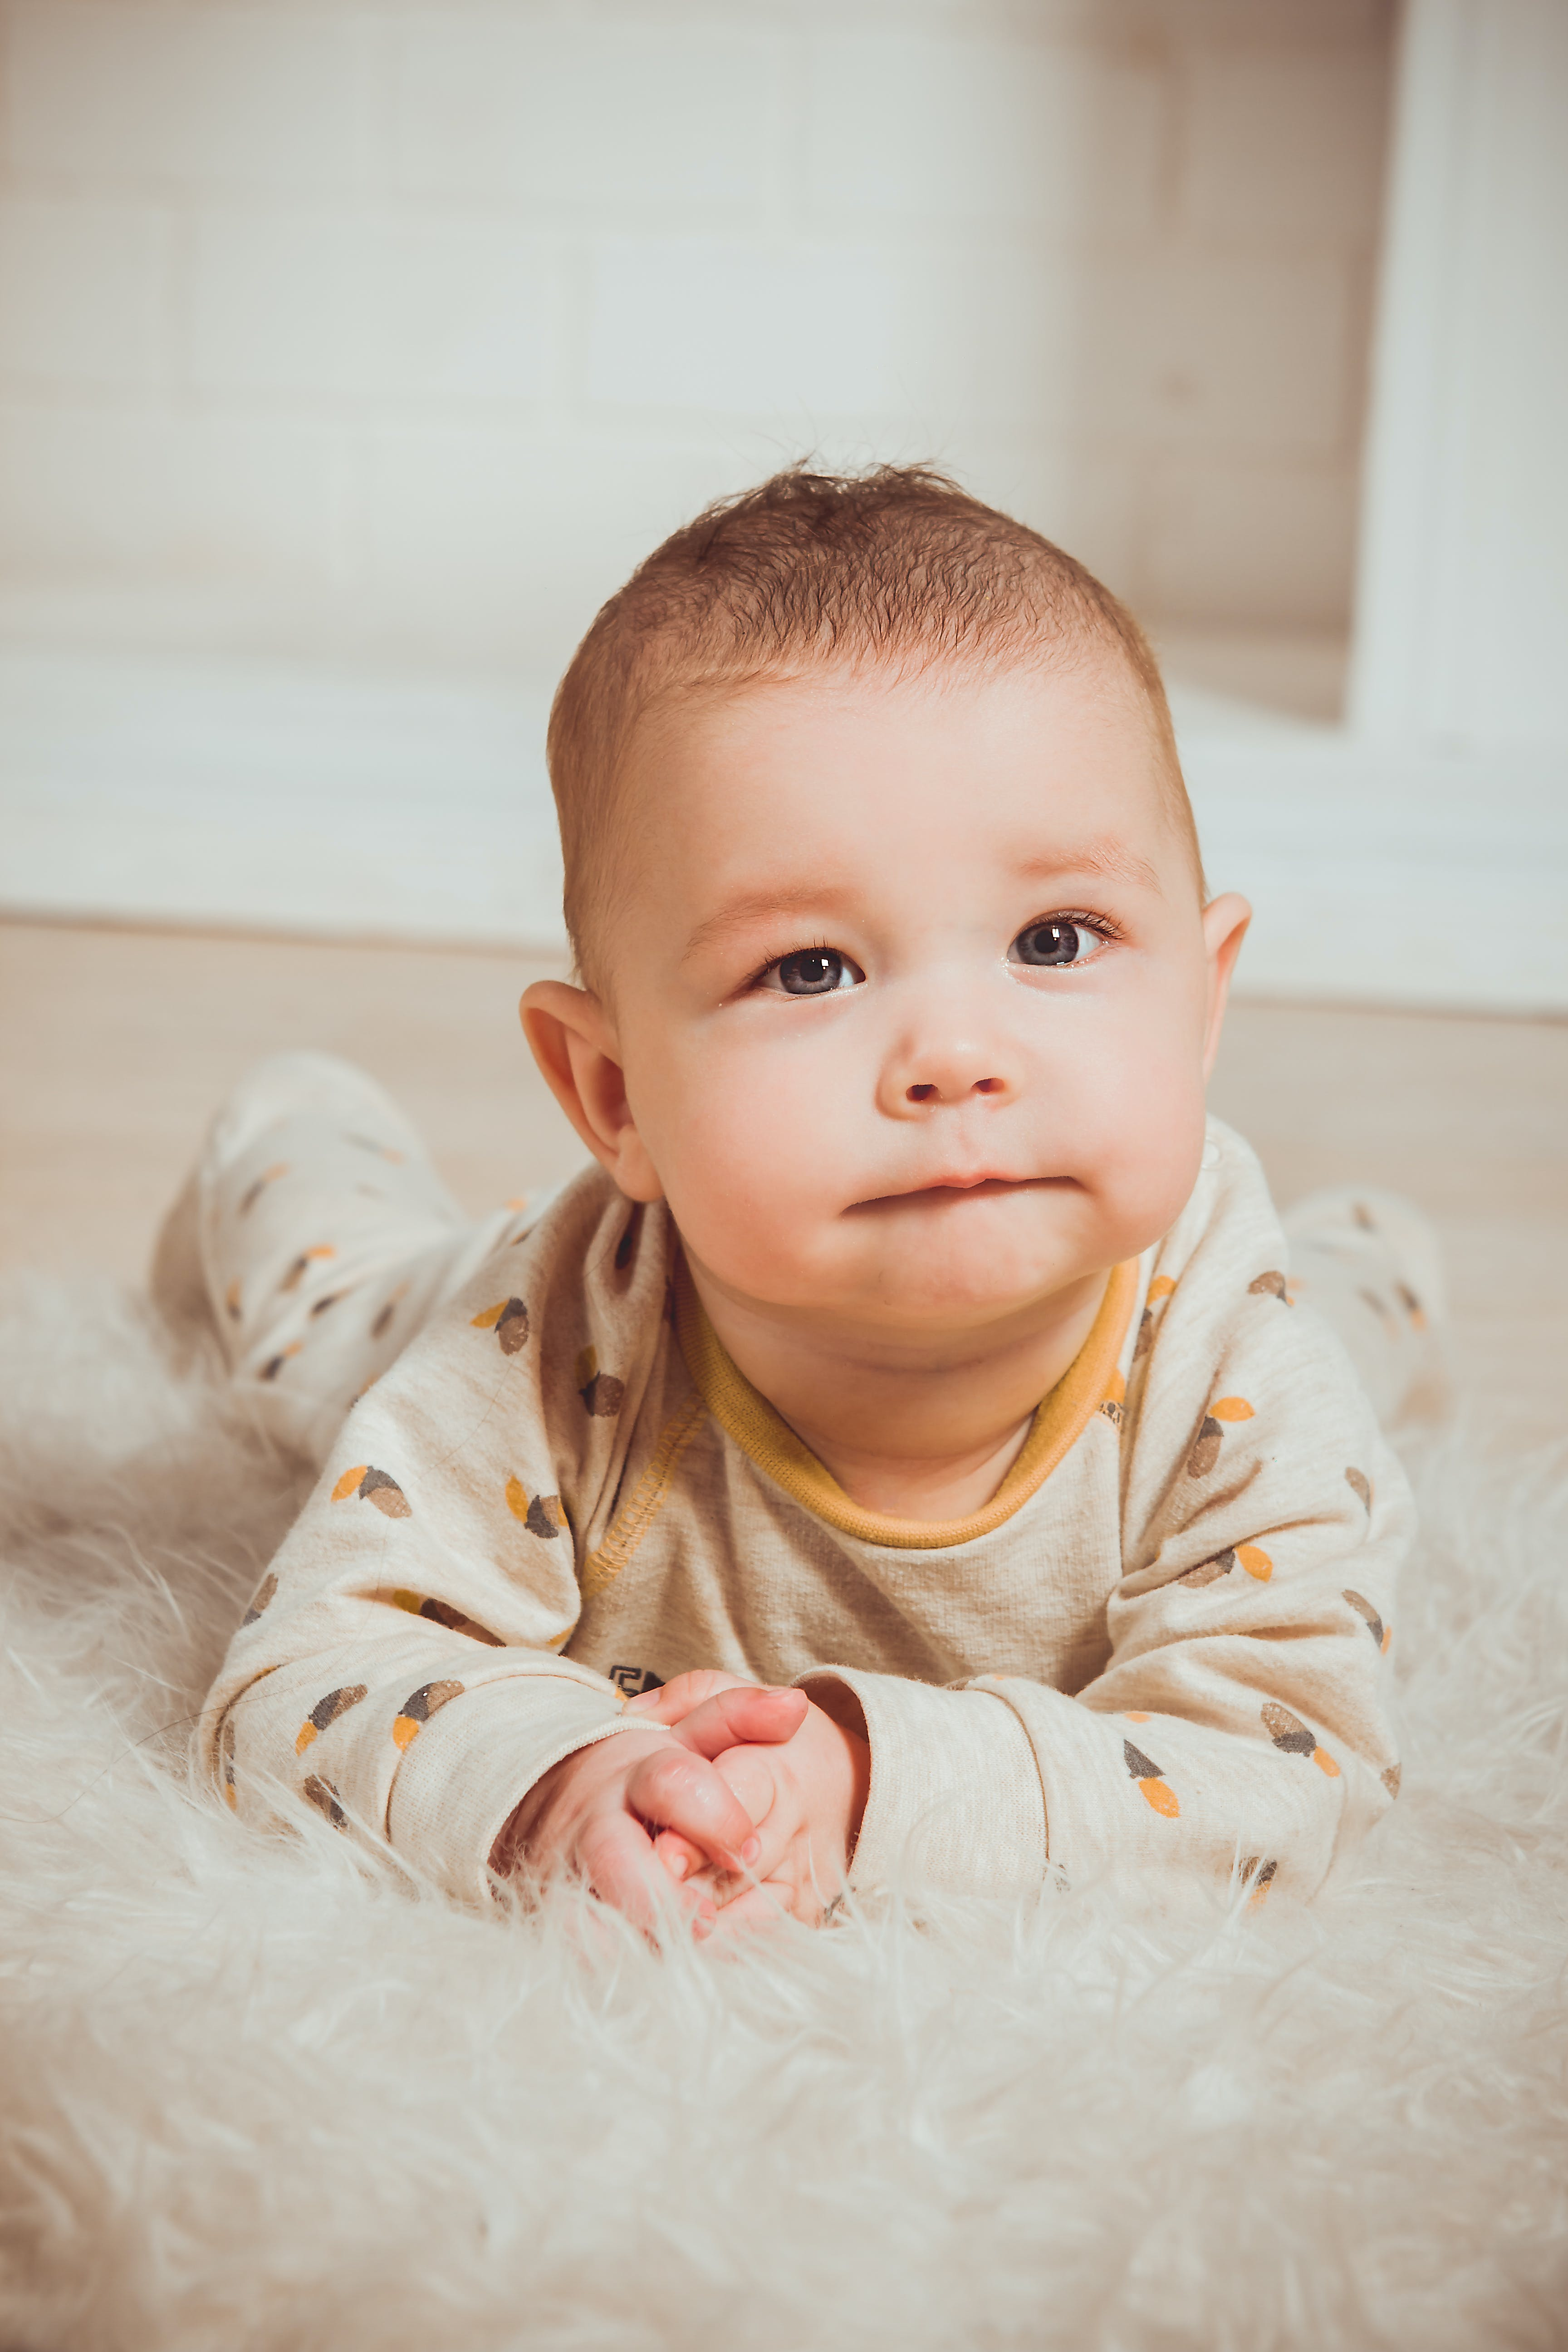 Photograph of a Baby Lying on Tummy